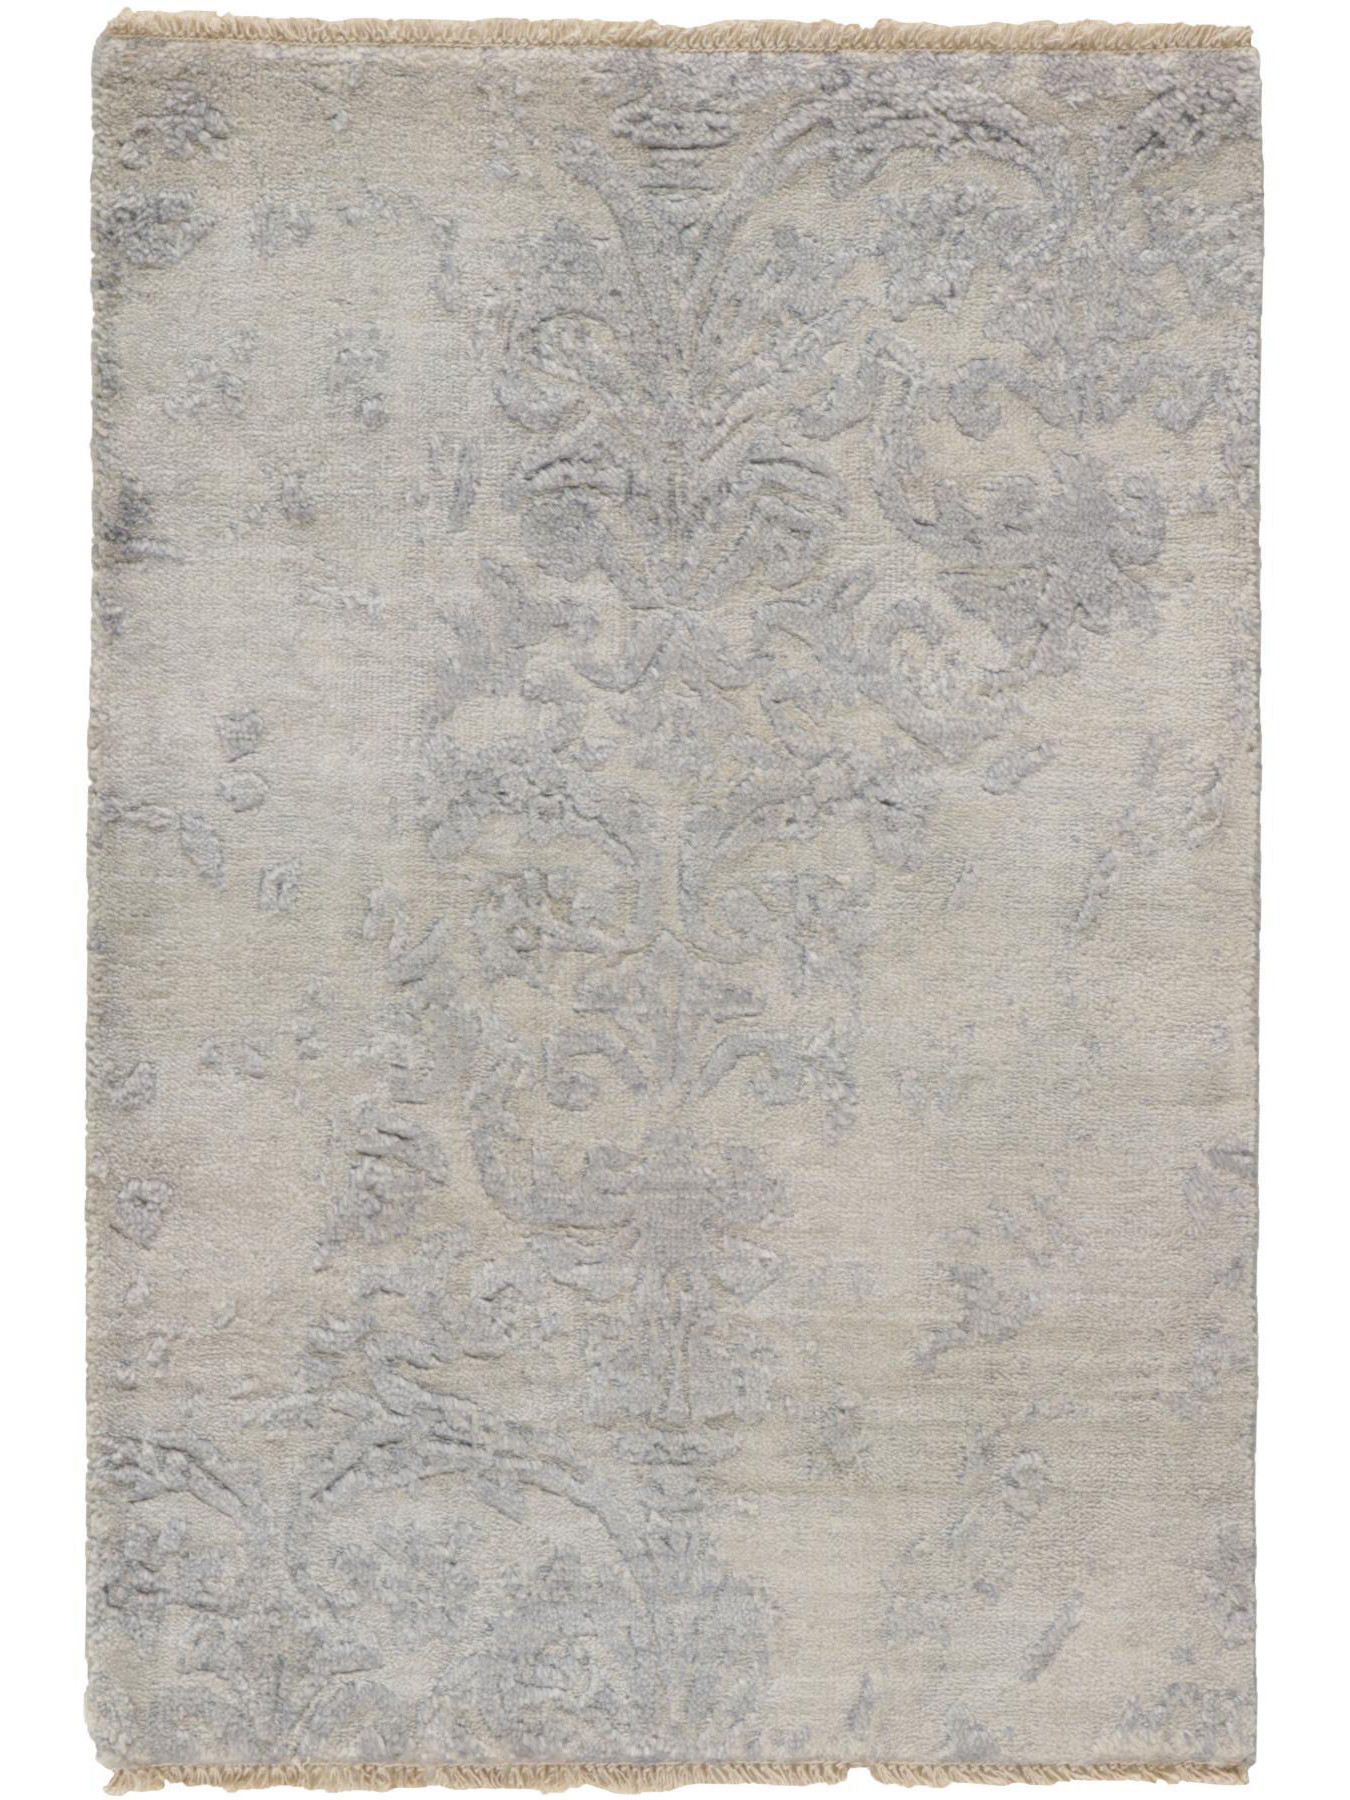 Luxury carpets - Damask-AL-2E B-14/B-15